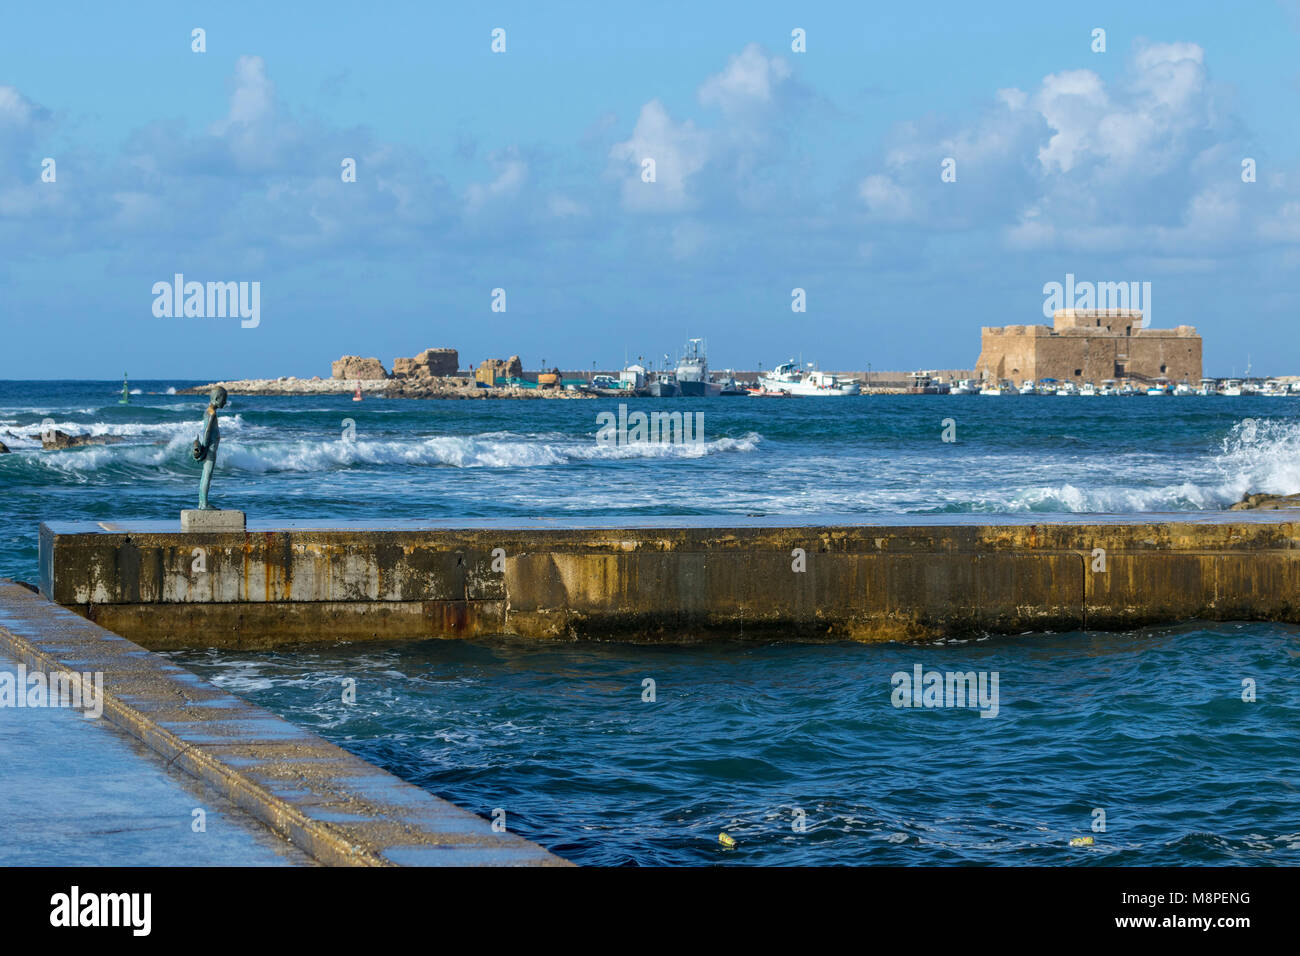 Paphos harbour on the mediterranean coast of Cyprus, Mediterranean - Stock Image